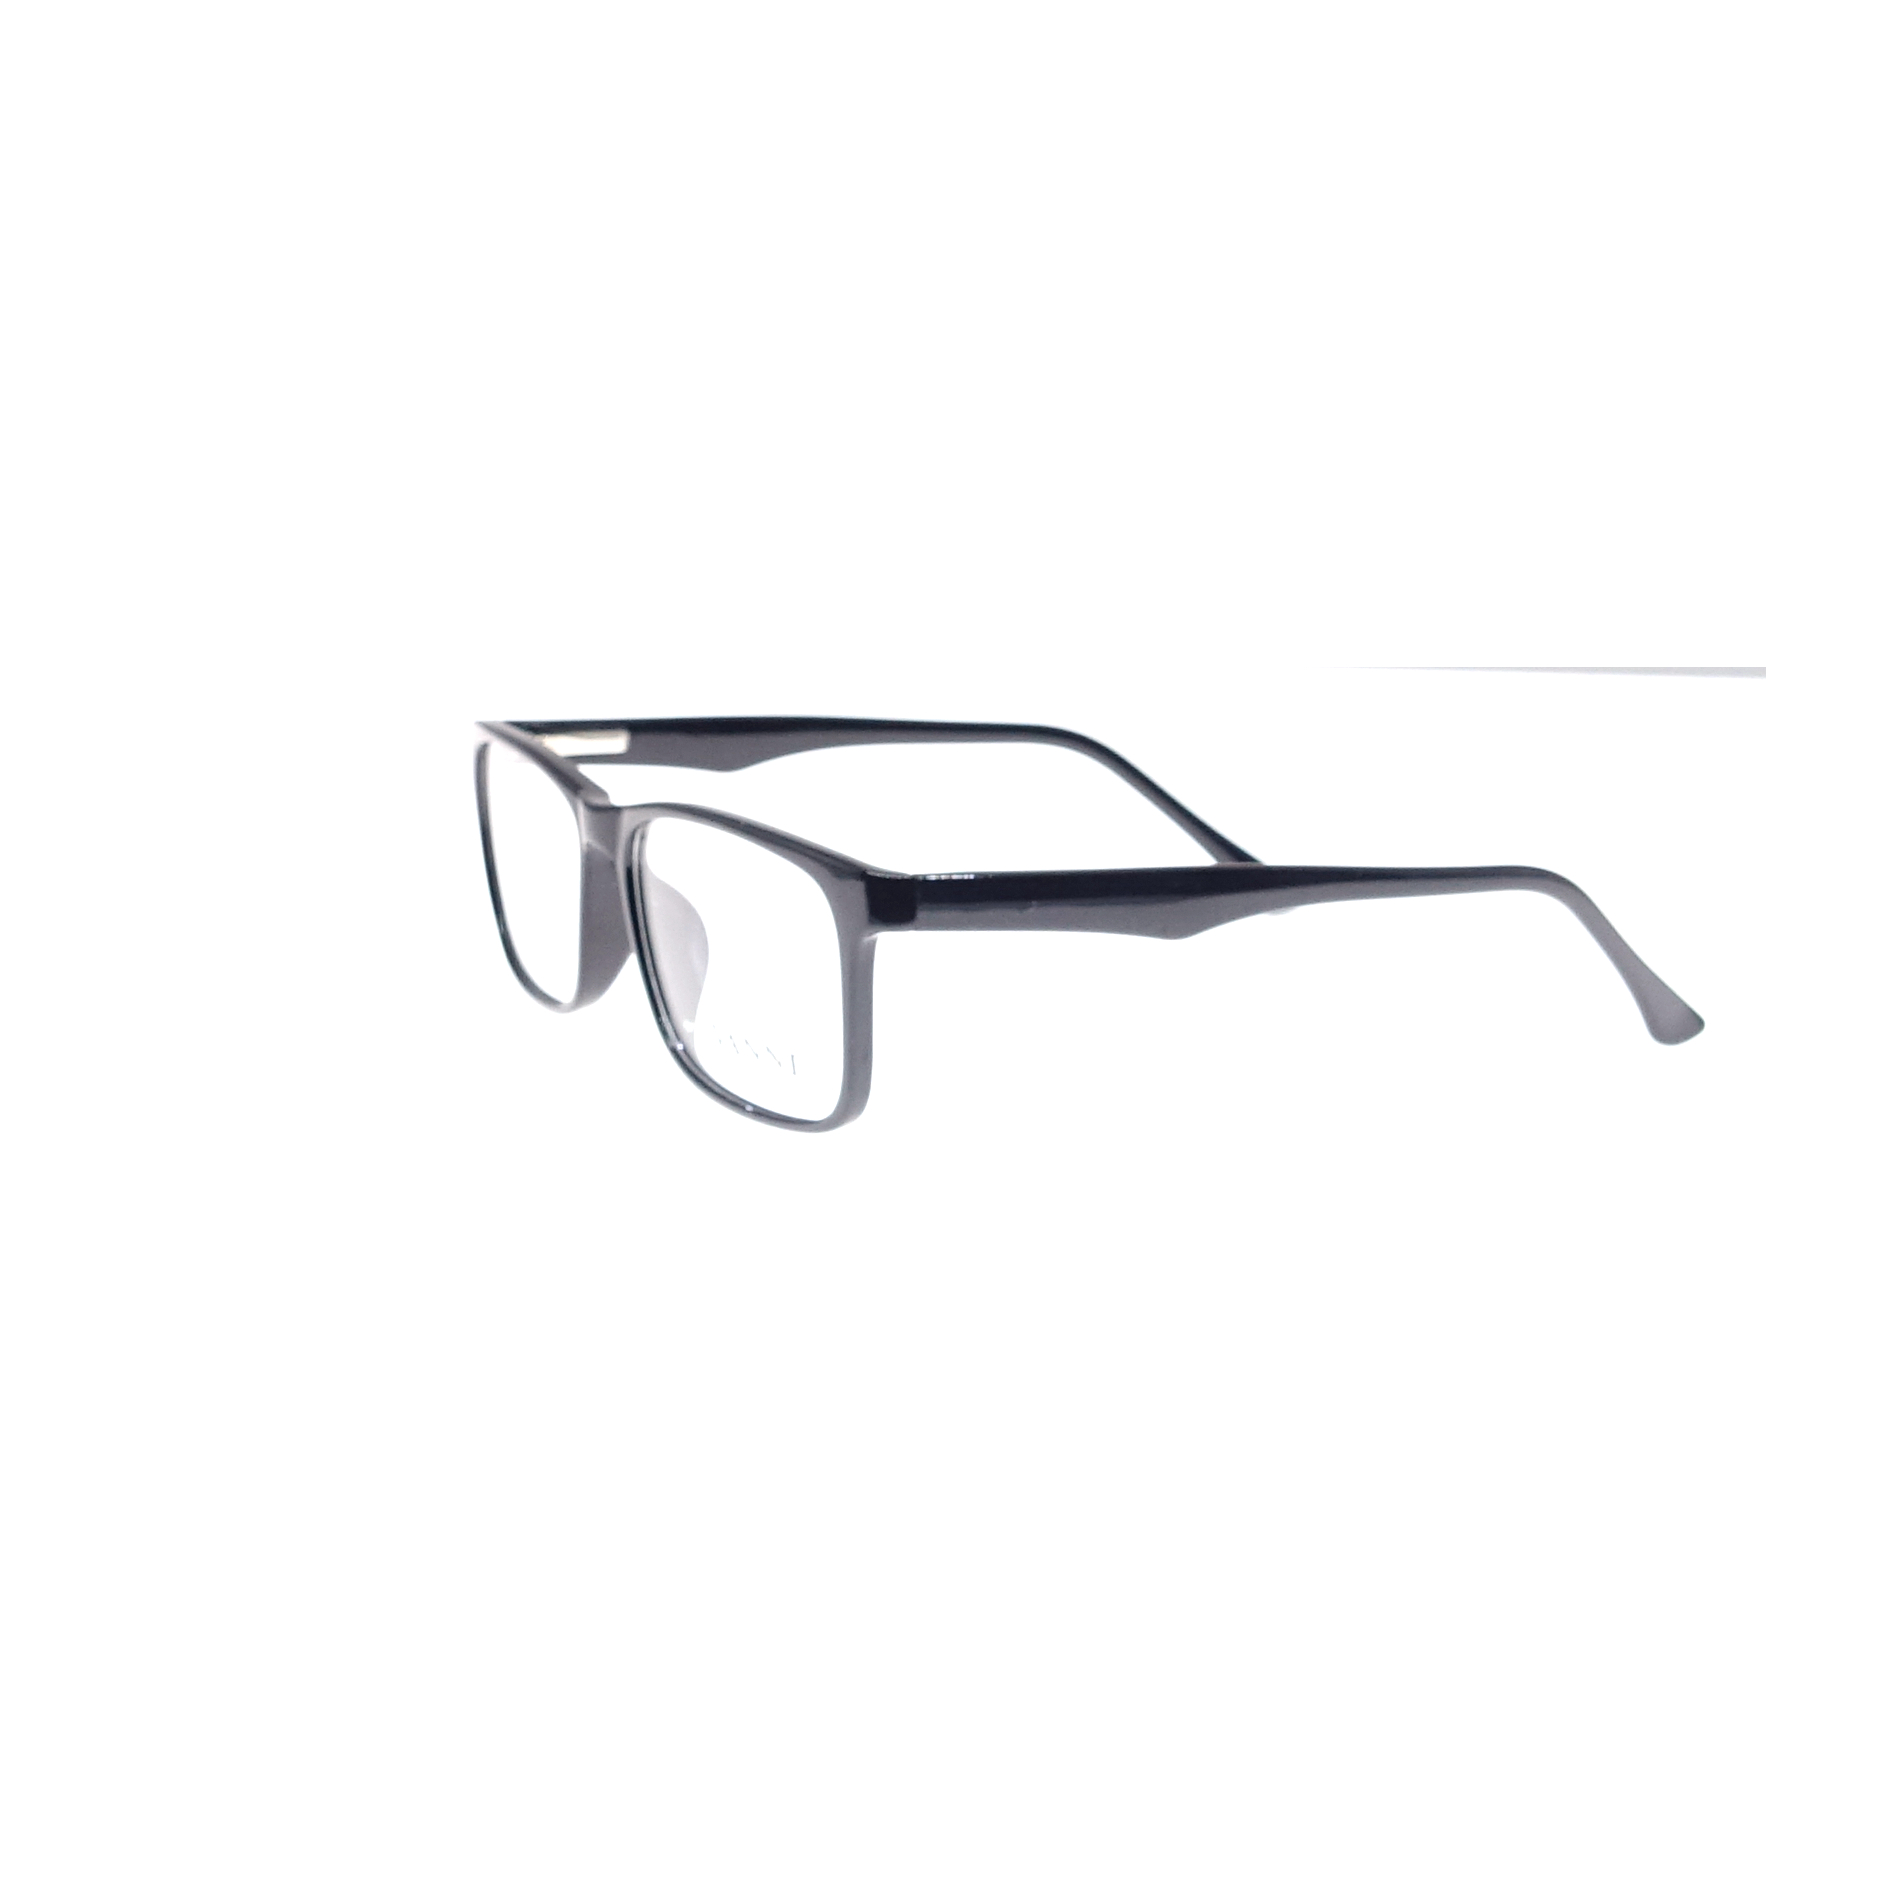 Attractive ready stock CP cheap eyeglasses optical frame low price eyeglasses frame фото